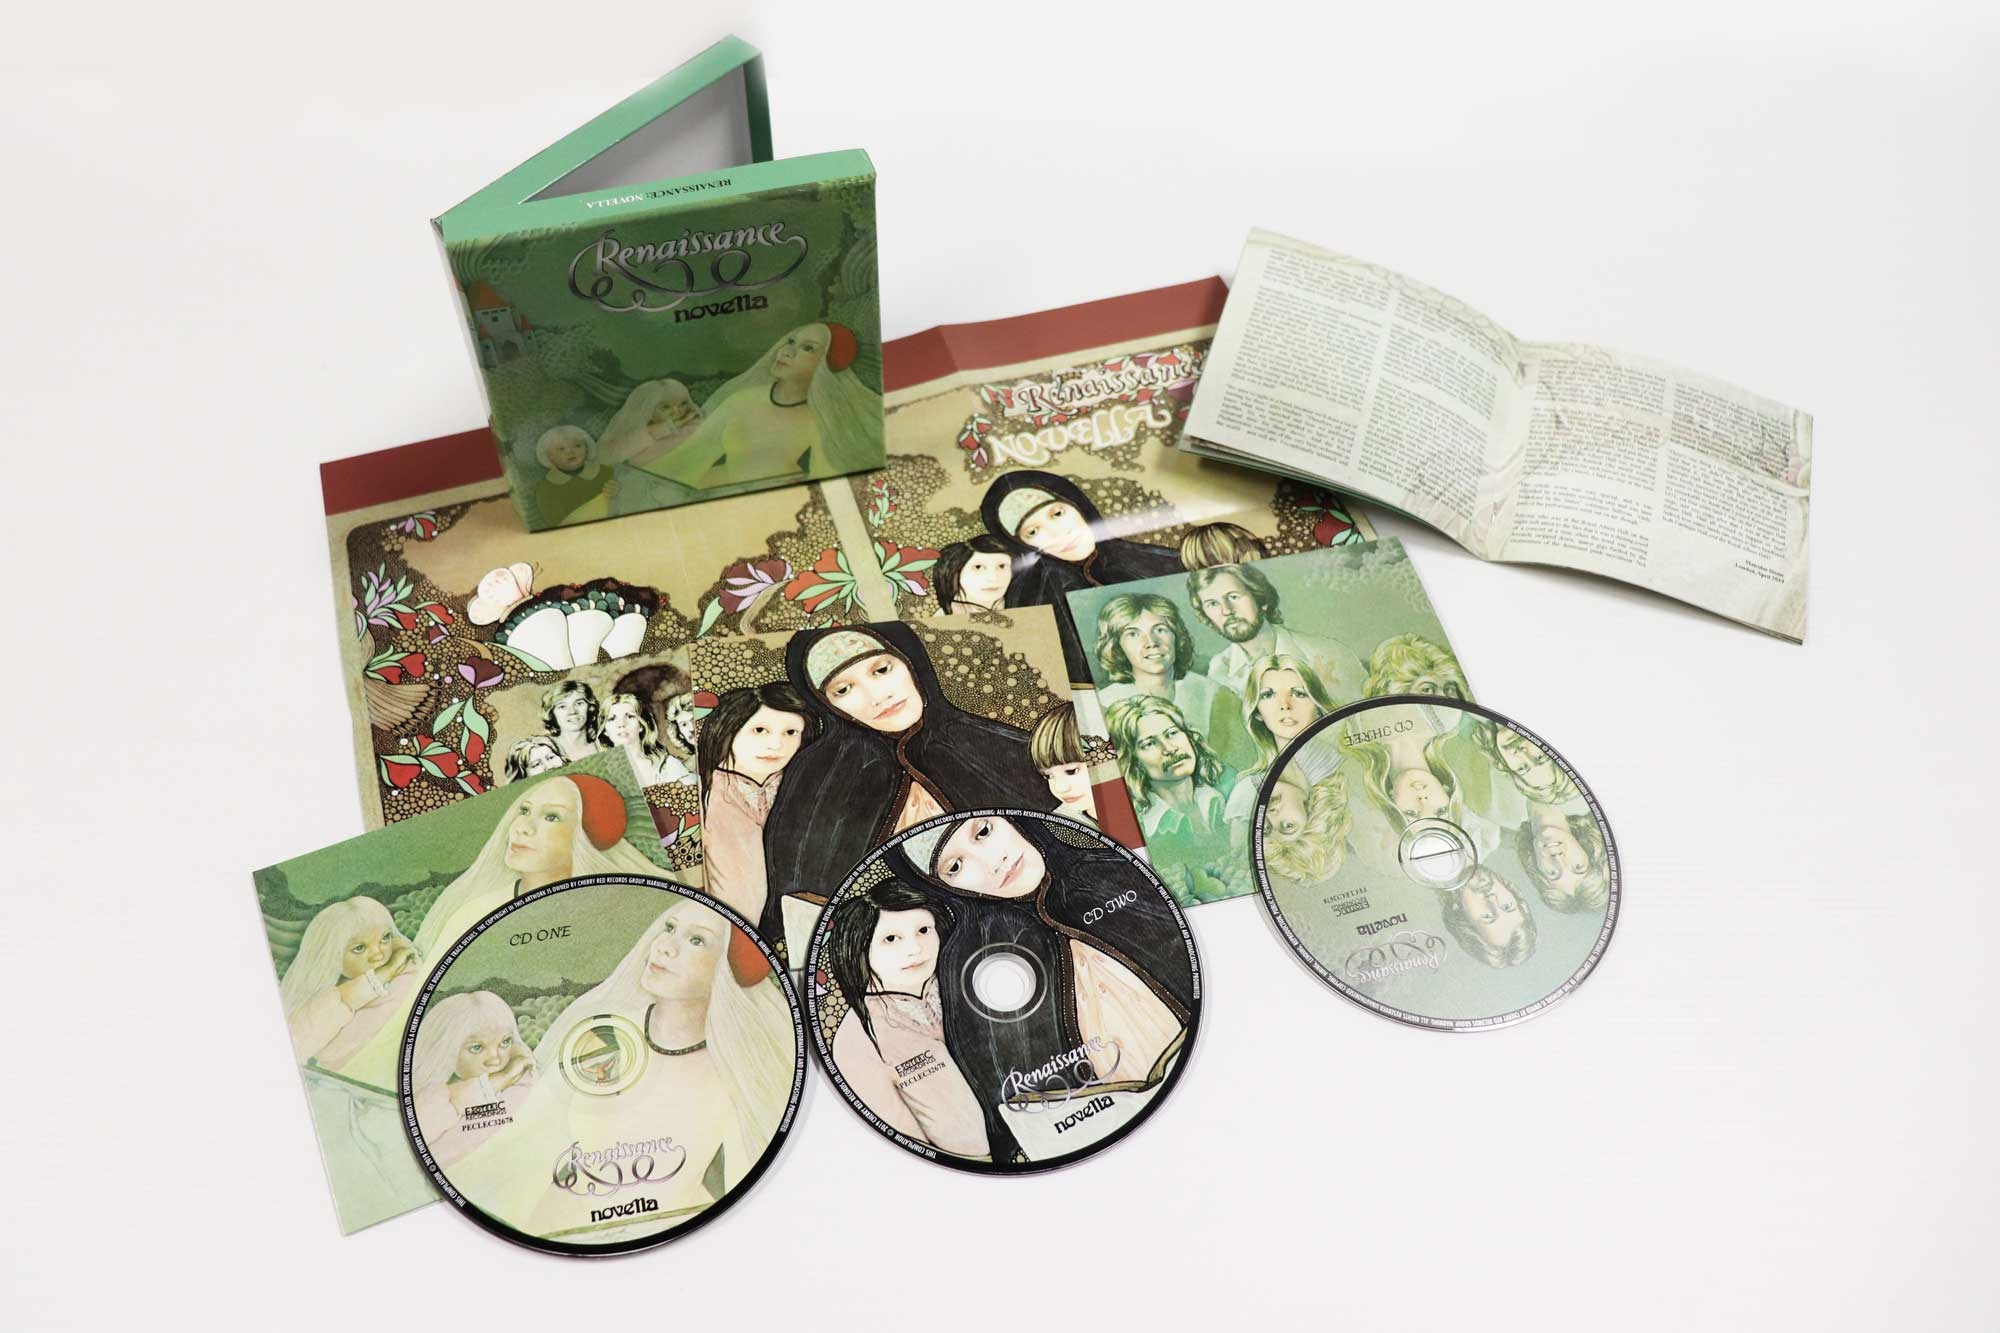 Novella, 3CD Remastered and Expanded Edition